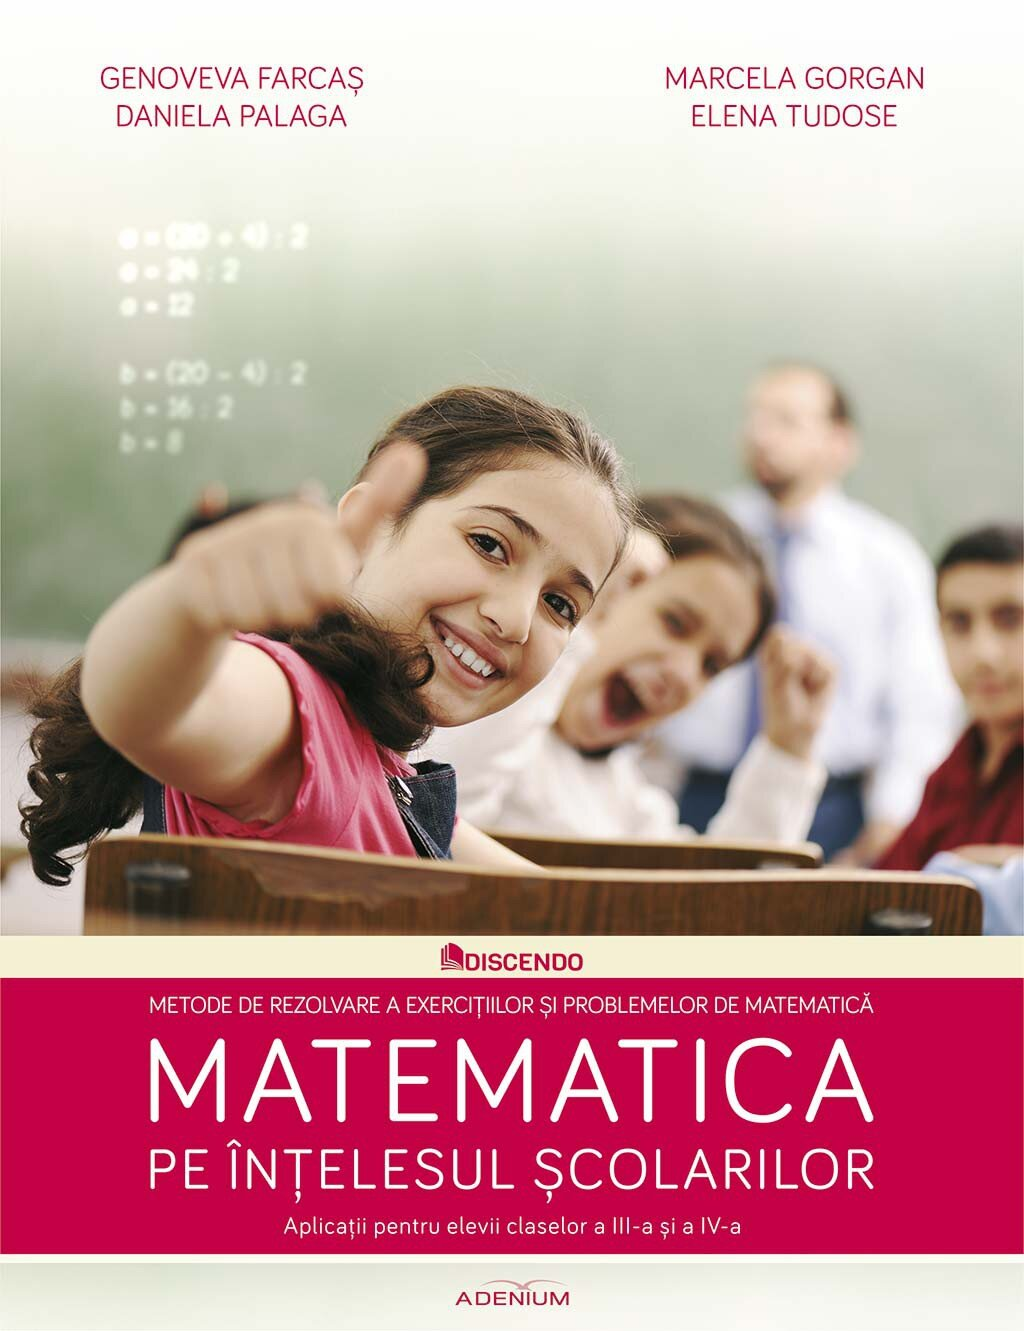 Matematica pe intelesul scolarilor (eBook)